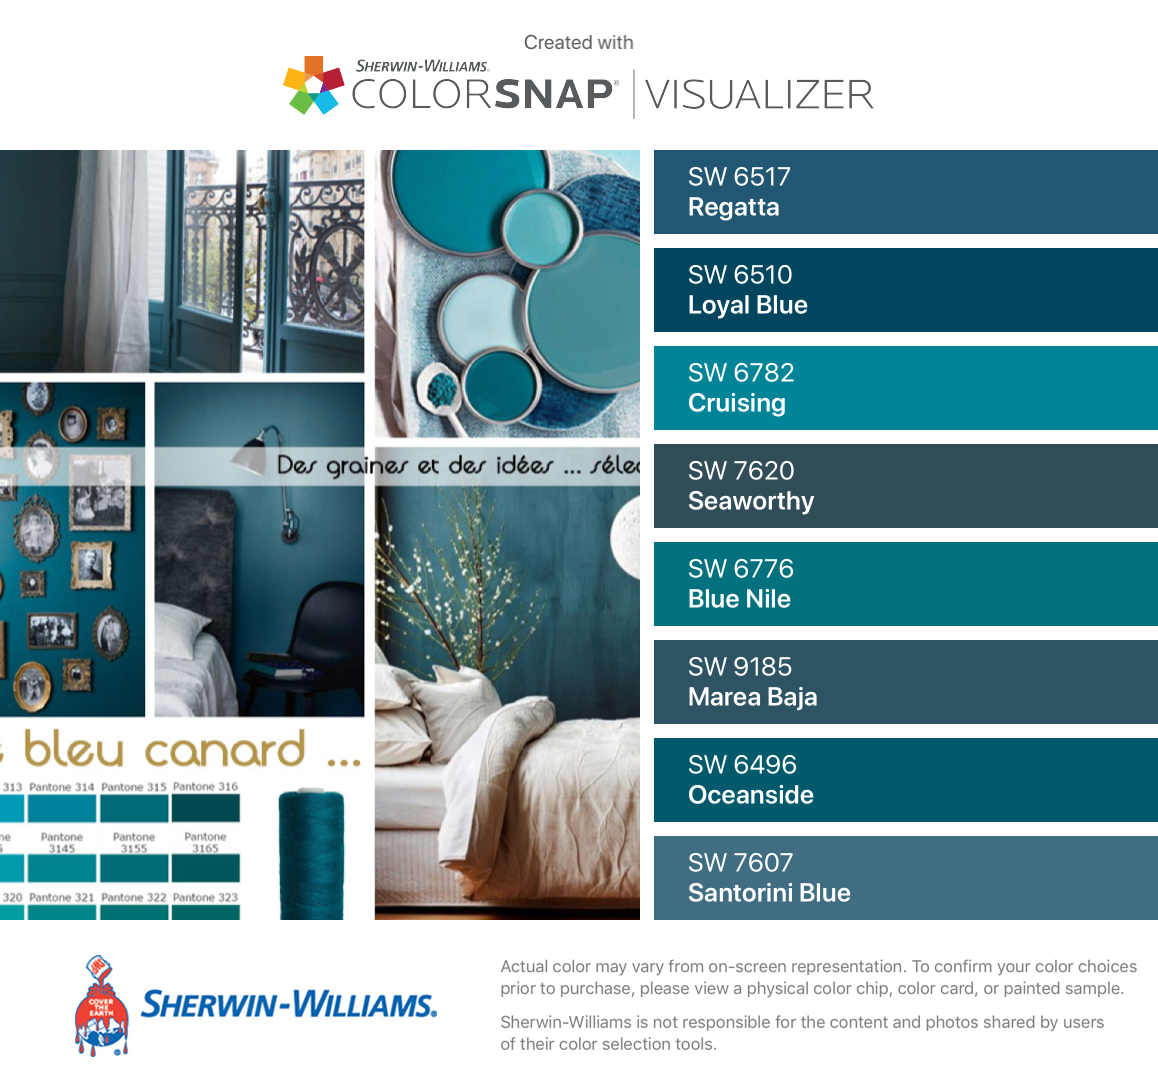 I Found These Colors With Colorsnap Visualizer For Iphone By Sherwin Williams Regatta Sw 6517 Loyal Paint Colors For Home Fall Paint Colors Santorini Blue